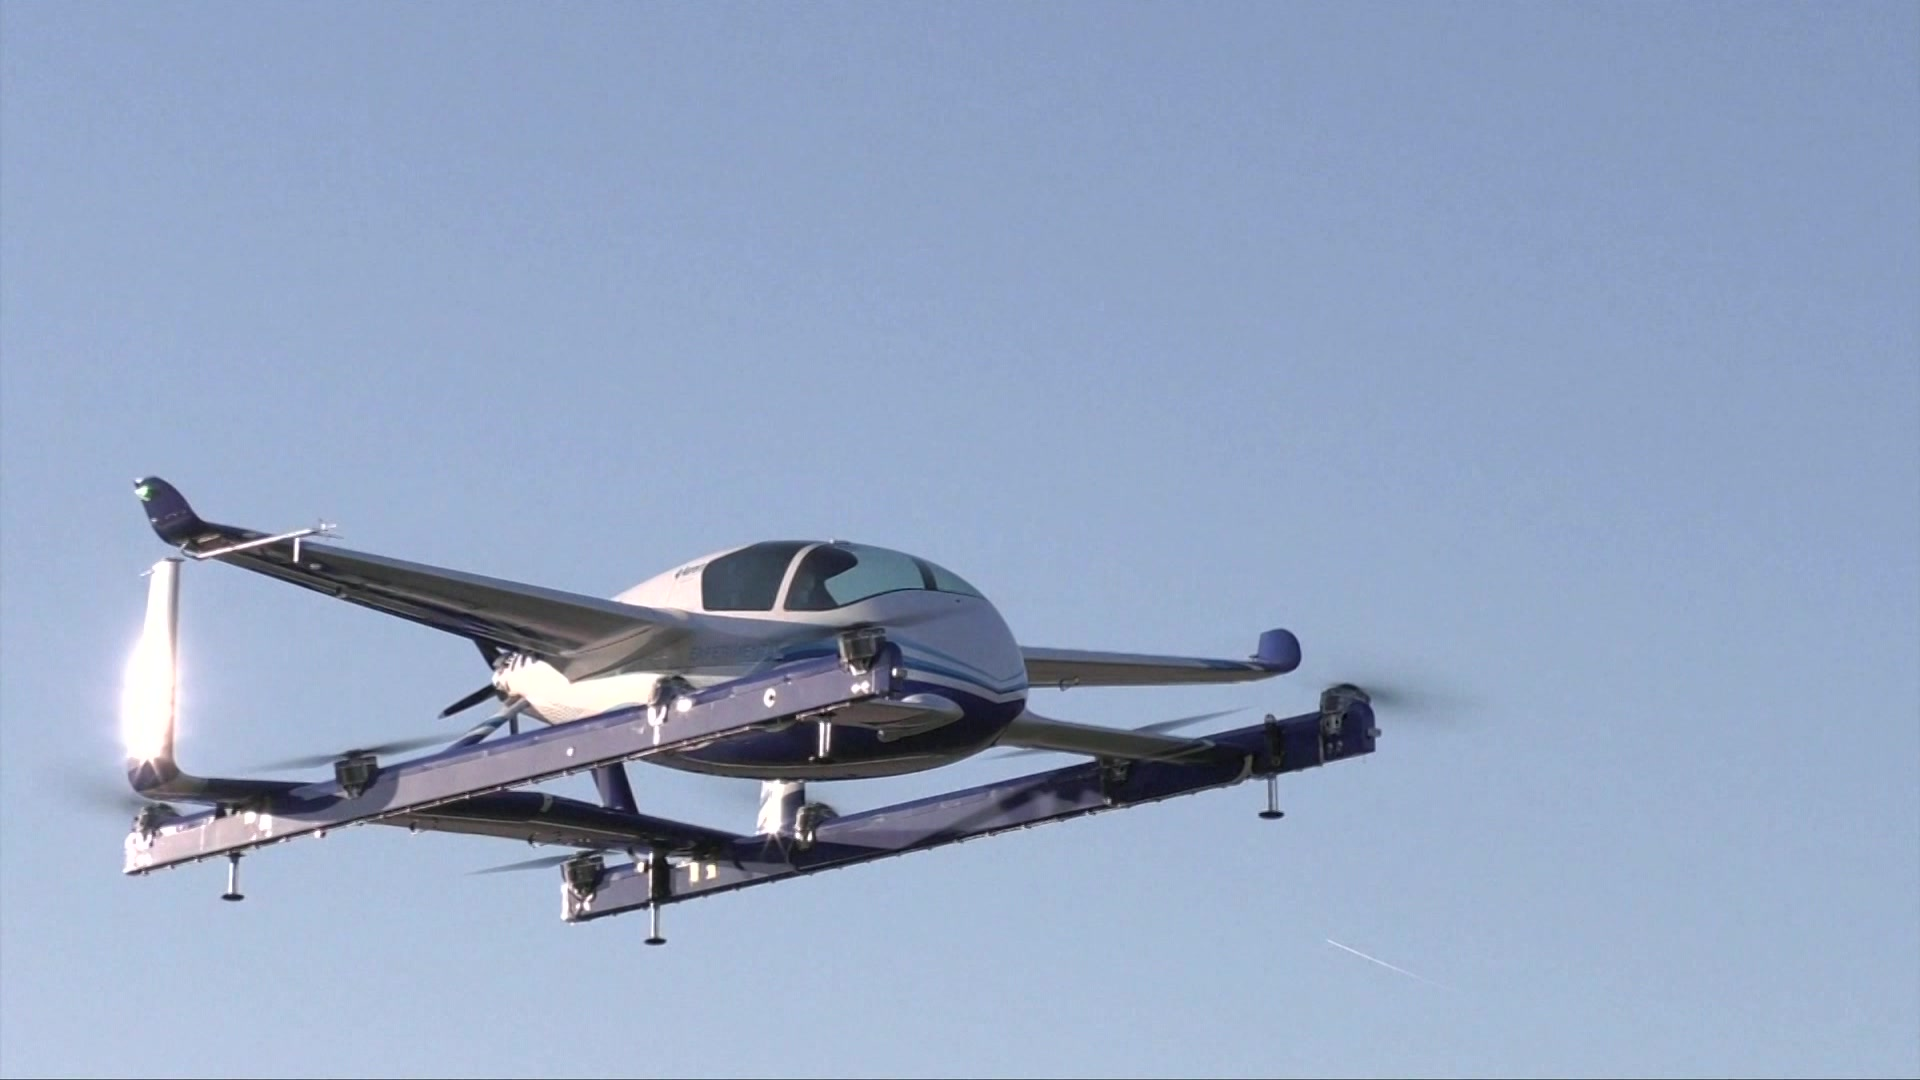 Boeing S First Autonomous Air Taxi Flight Ends In Fewer